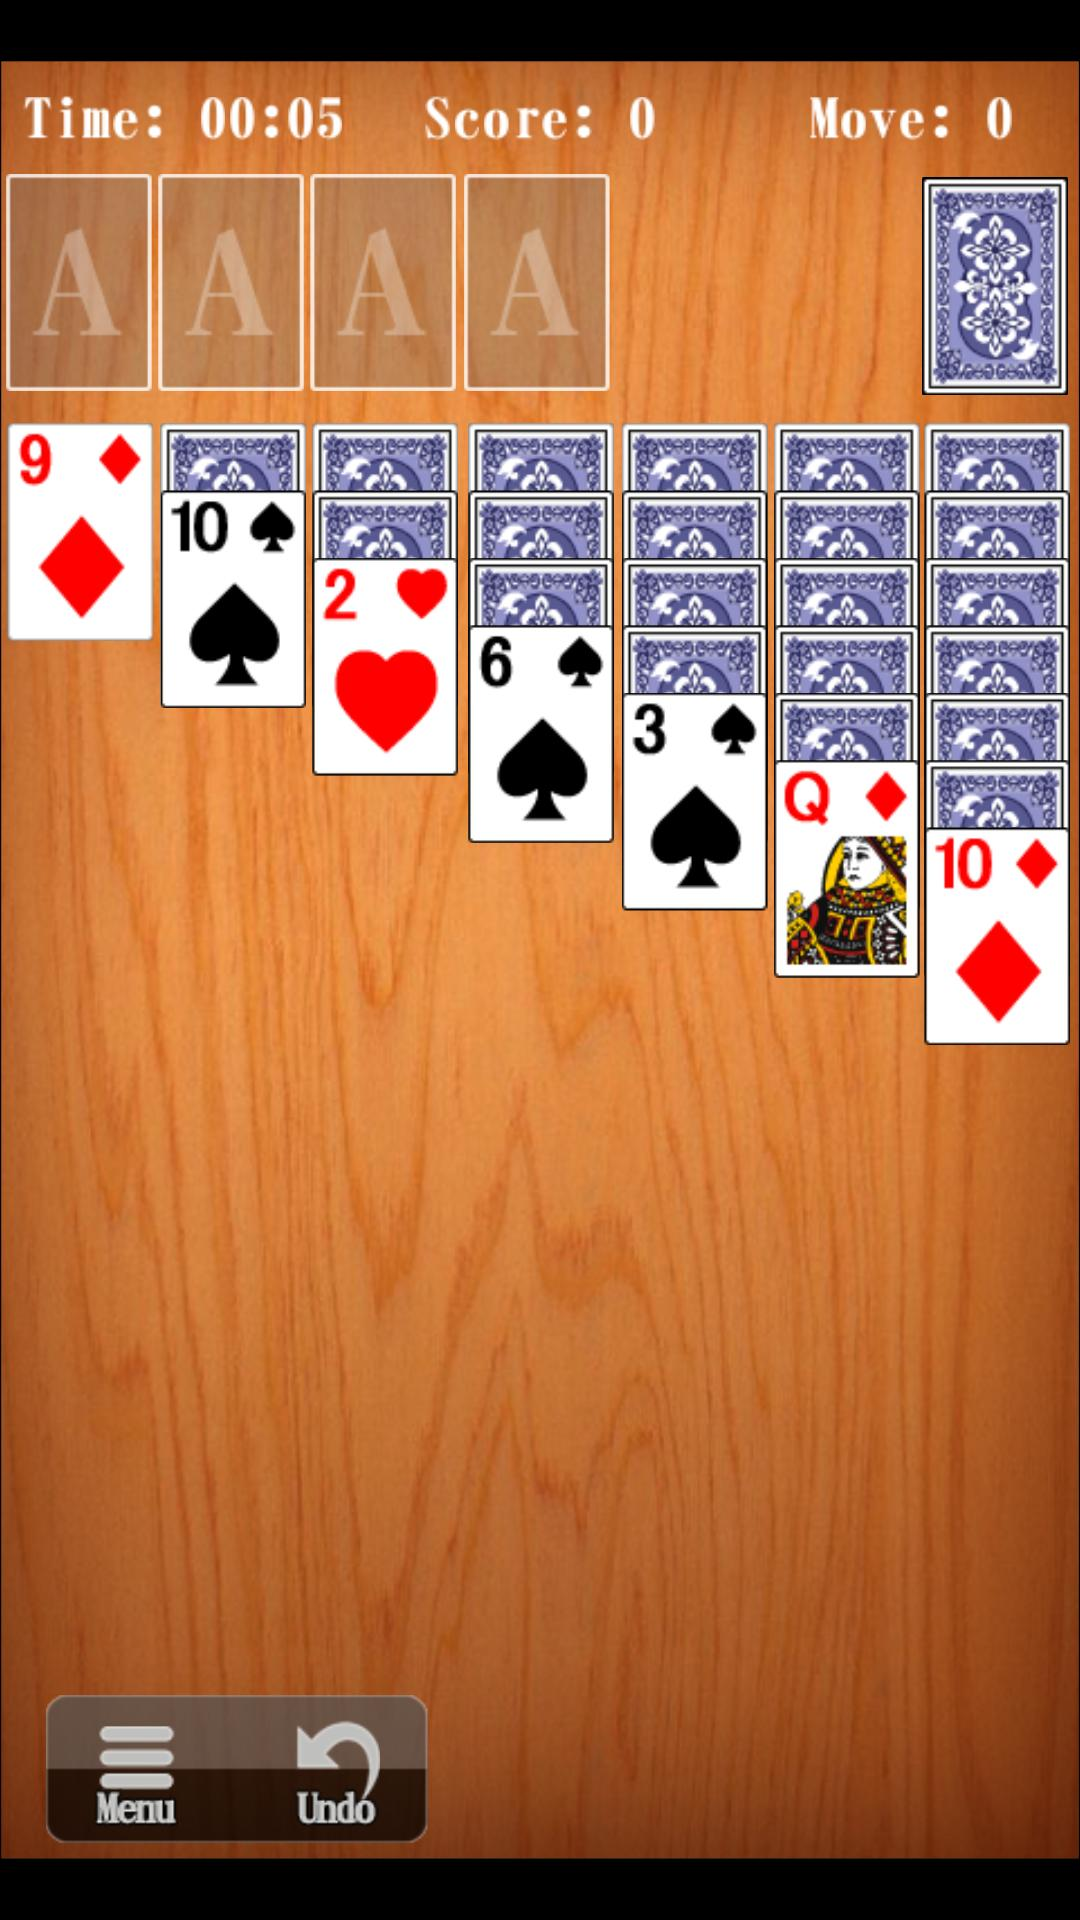 Solitaire 1.6.15 Screenshot 10